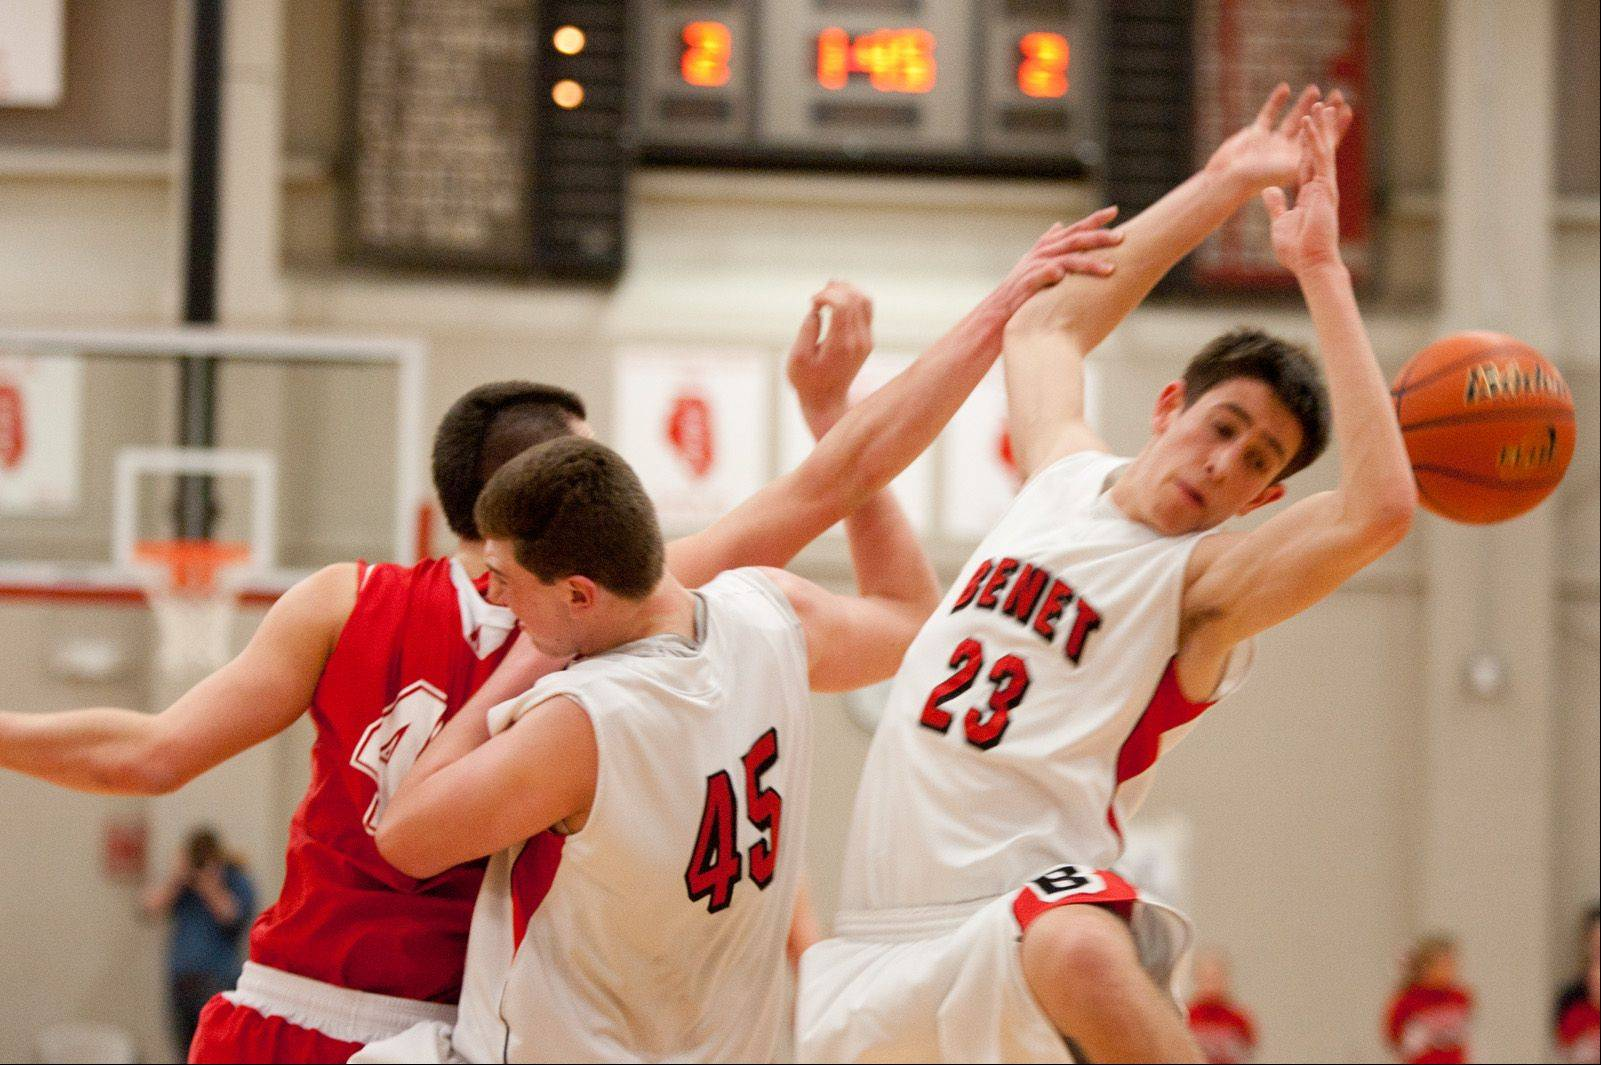 Naperville Central played Benet in the Class 4A Benet boys basketball regional final Friday night.